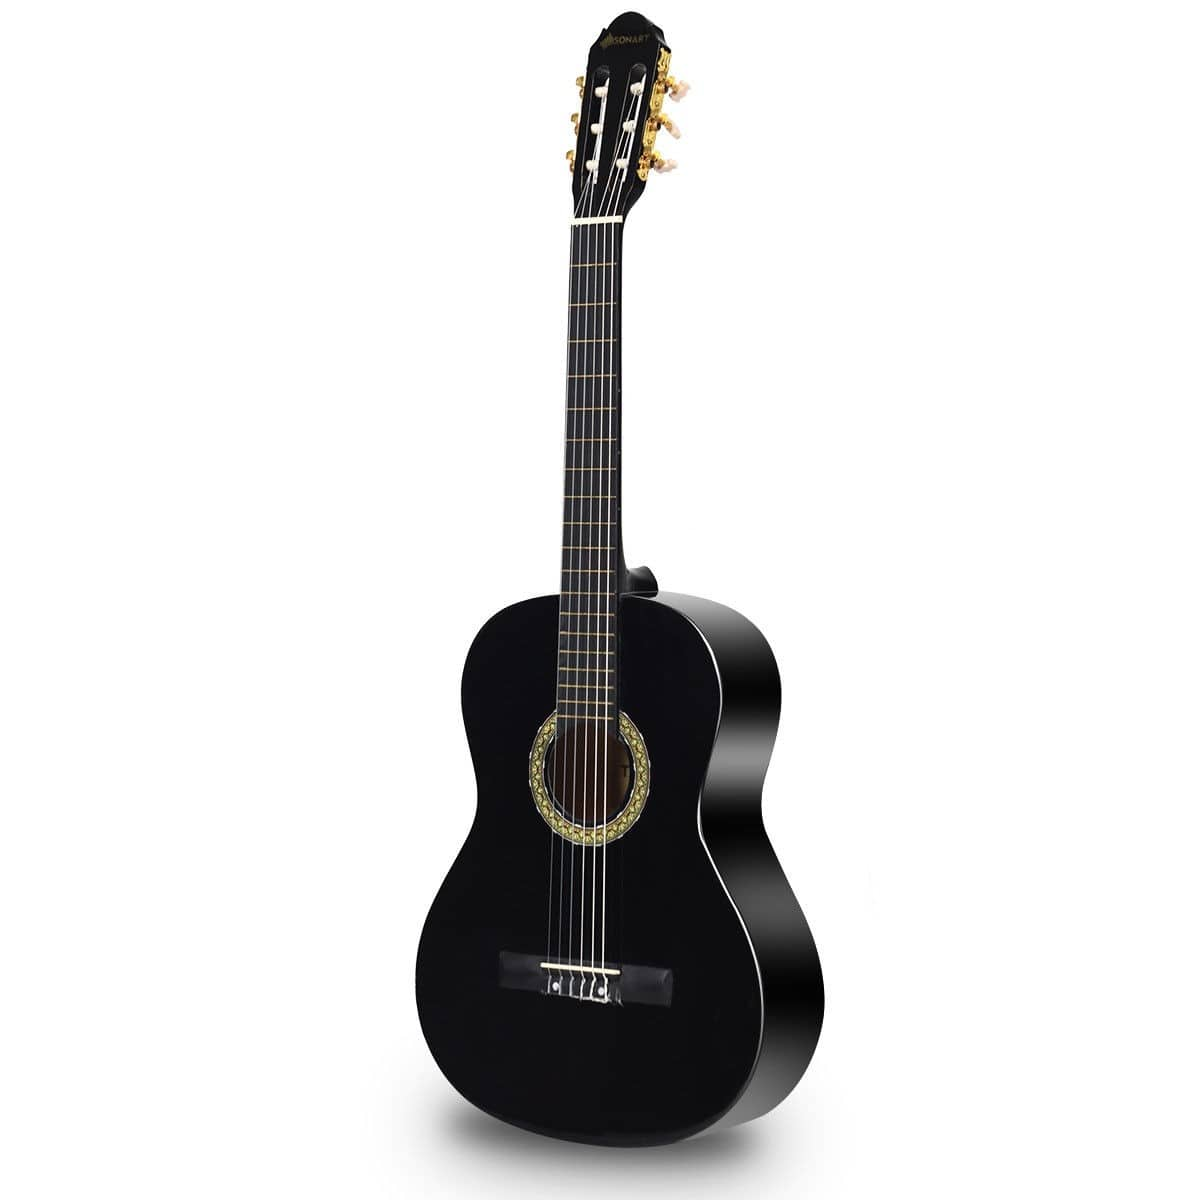 """Costway 39"""" Full Size 6 String Classical Guitar with Bag - $46.95 + Free Shipping"""